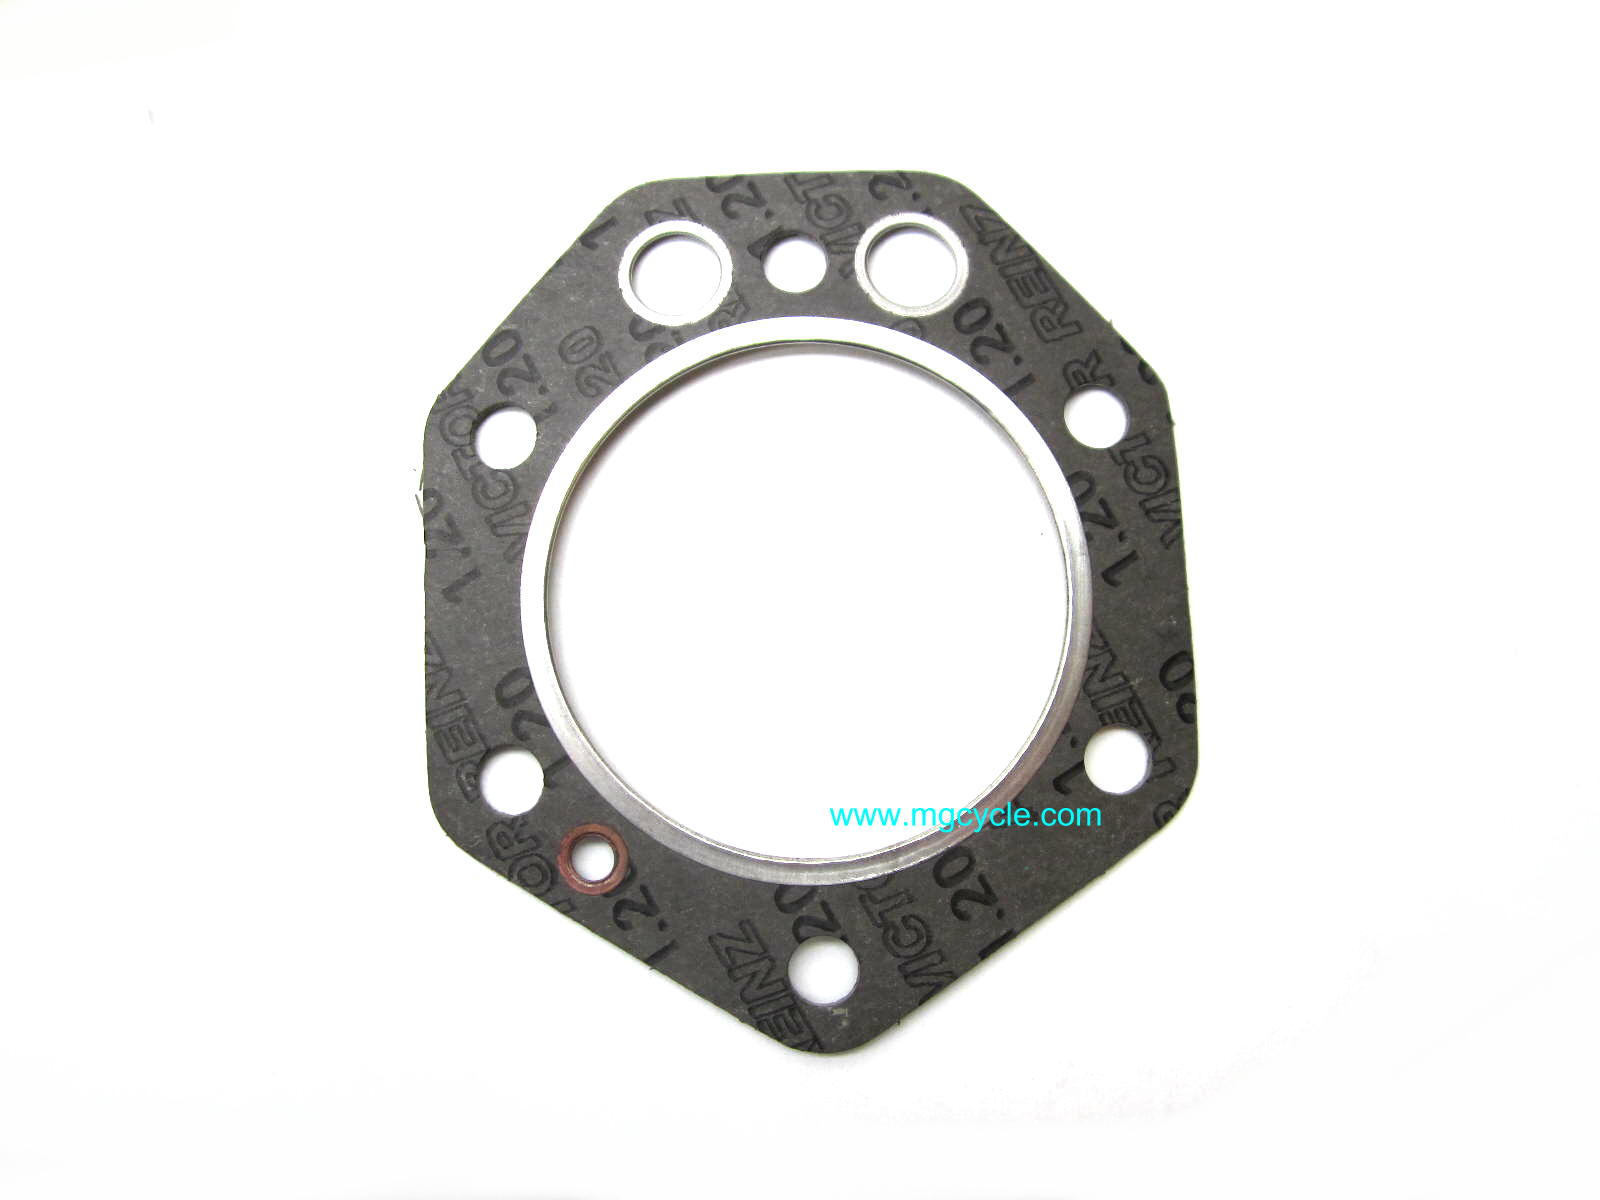 Head gasket for 850cc round fin T T3 850LM